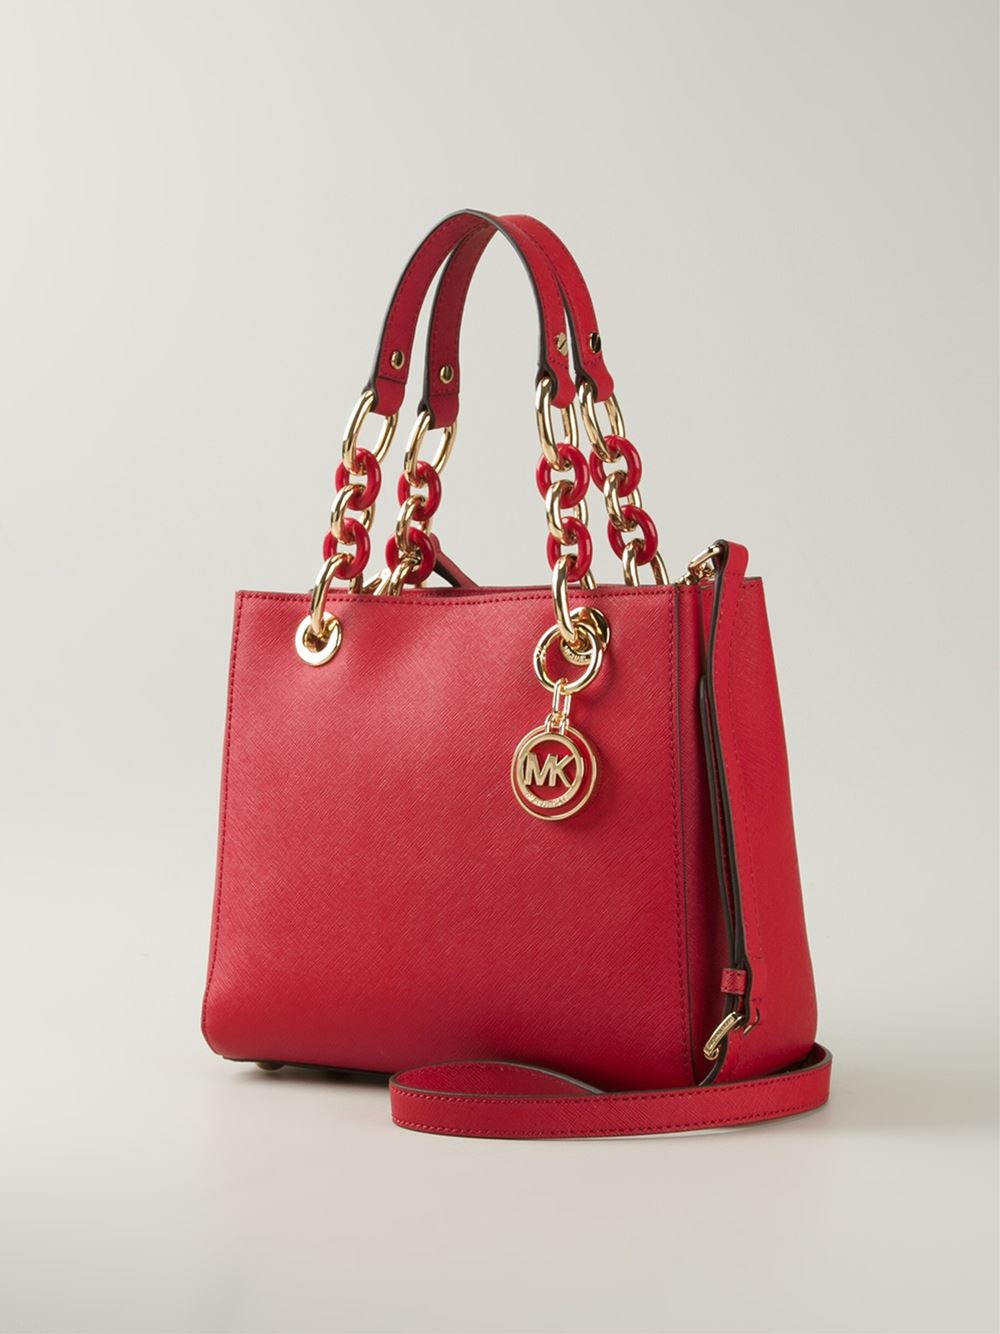 09b498dc40a6 ... coupon code lyst michael michael kors cynthia leather bag in red 3660e  fa5e8